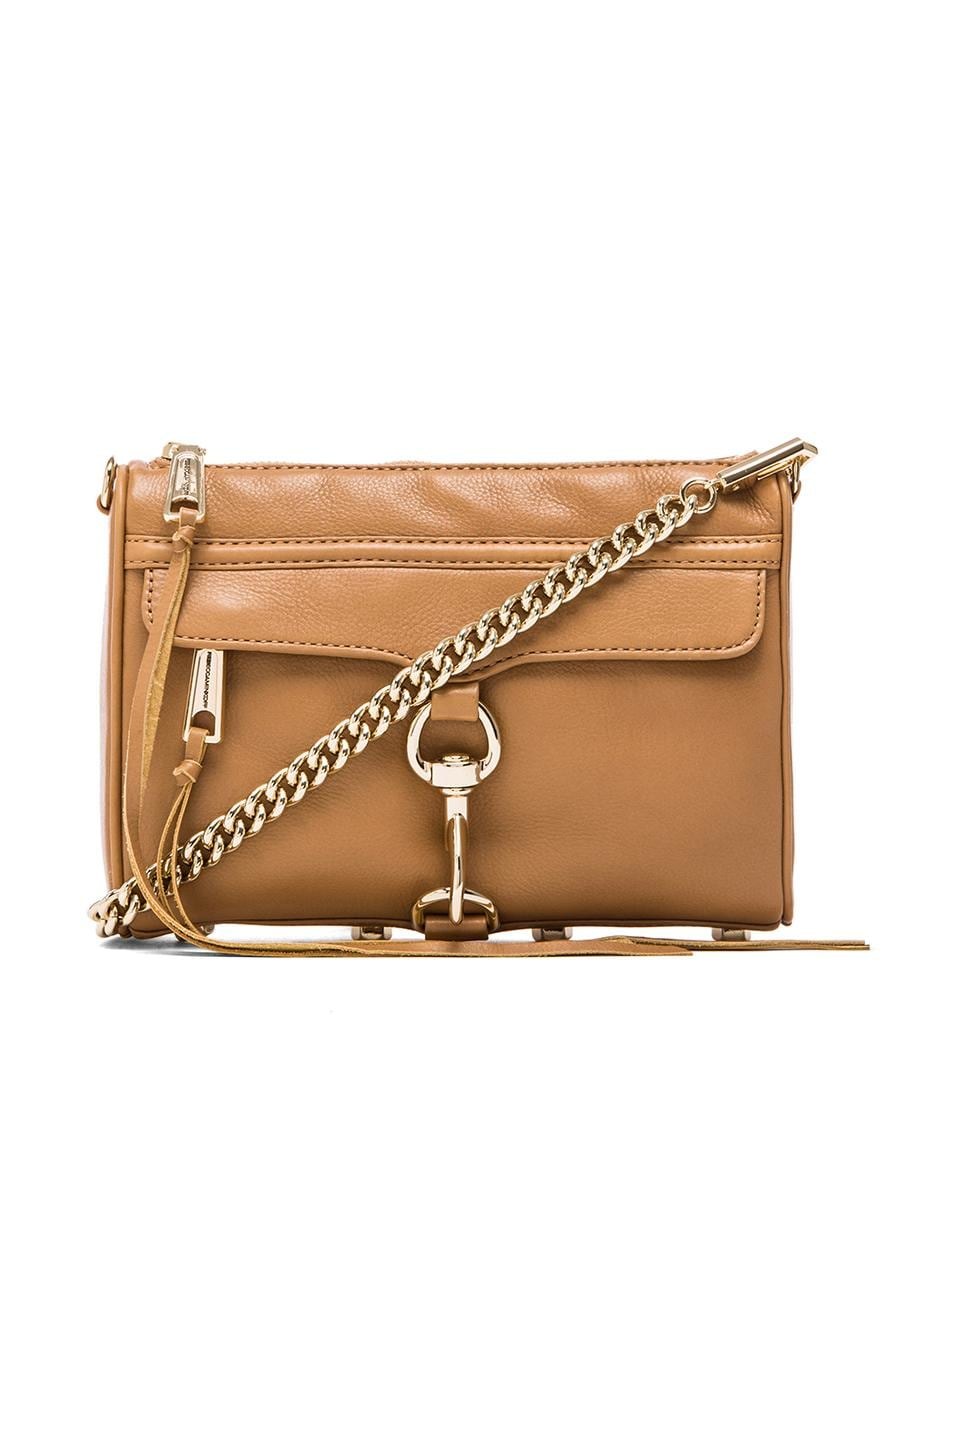 Rebecca Minkoff Mini MAC in Fatigue